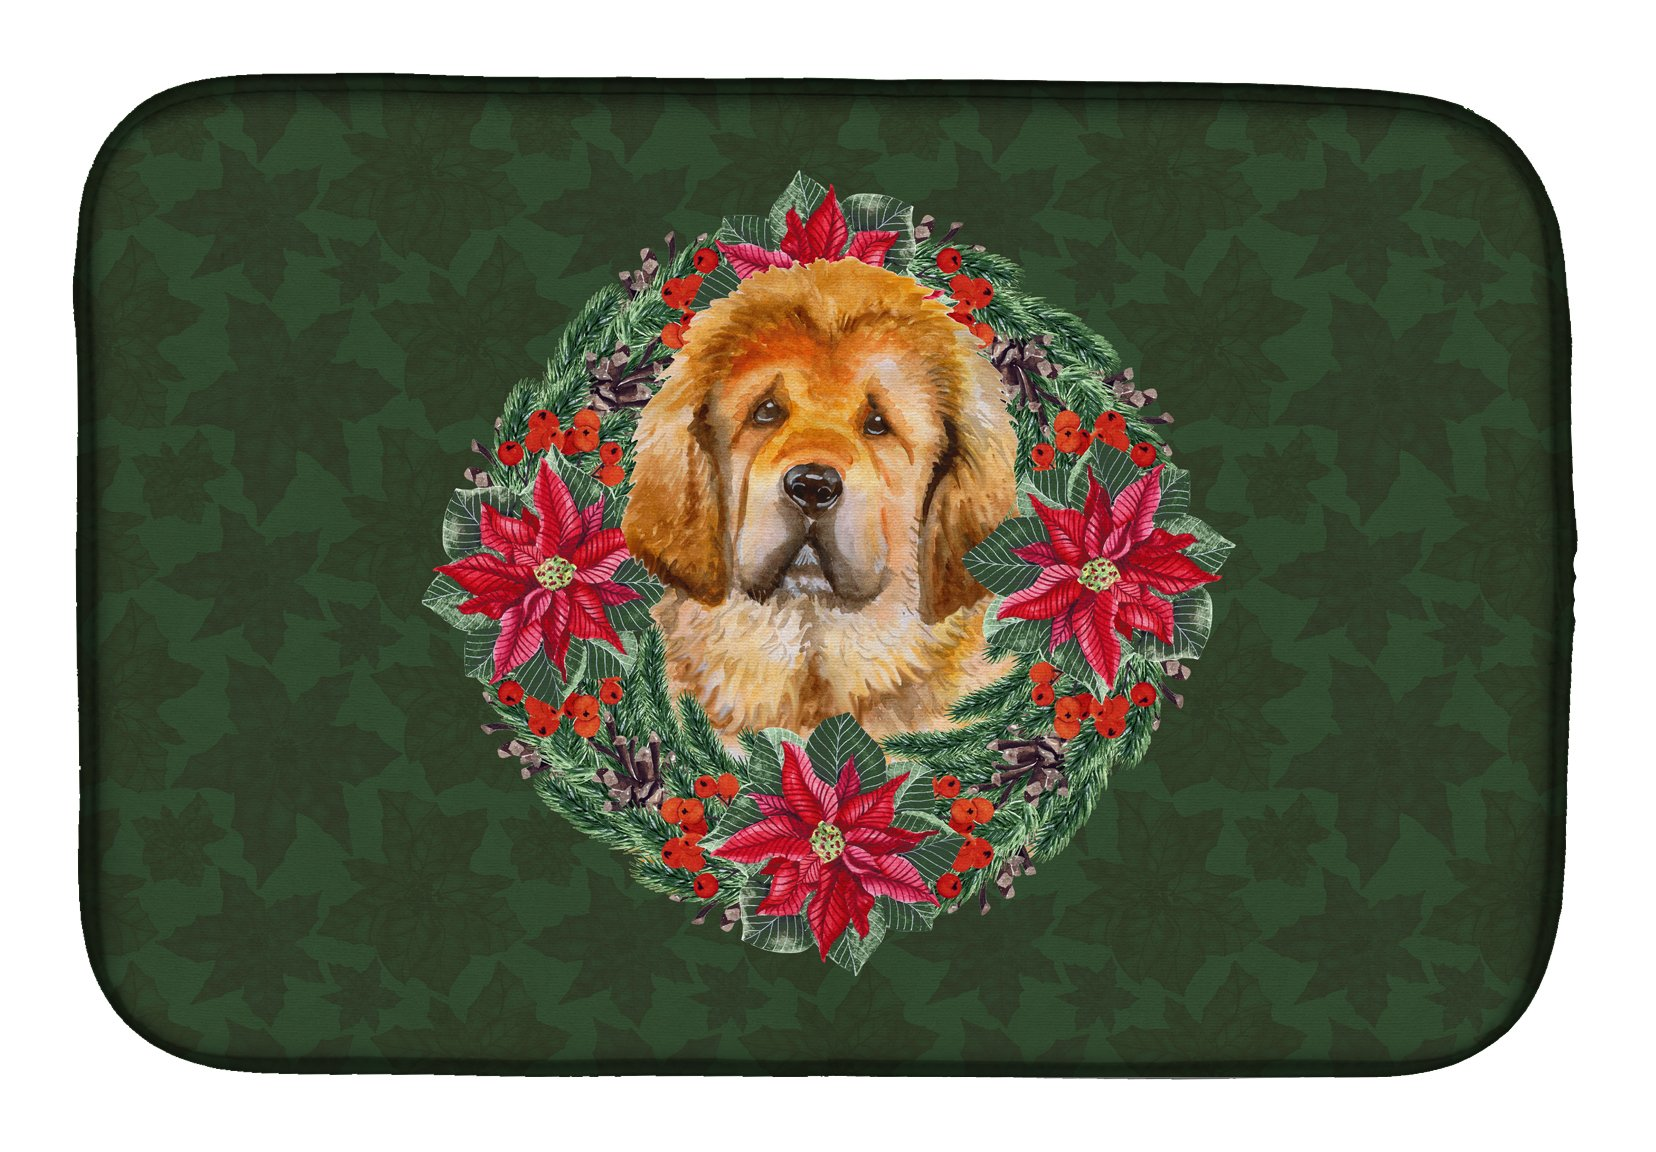 Tibetan Mastiff Poinsetta Wreath Dish Drying Mat CK1587DDM by Caroline's Treasures